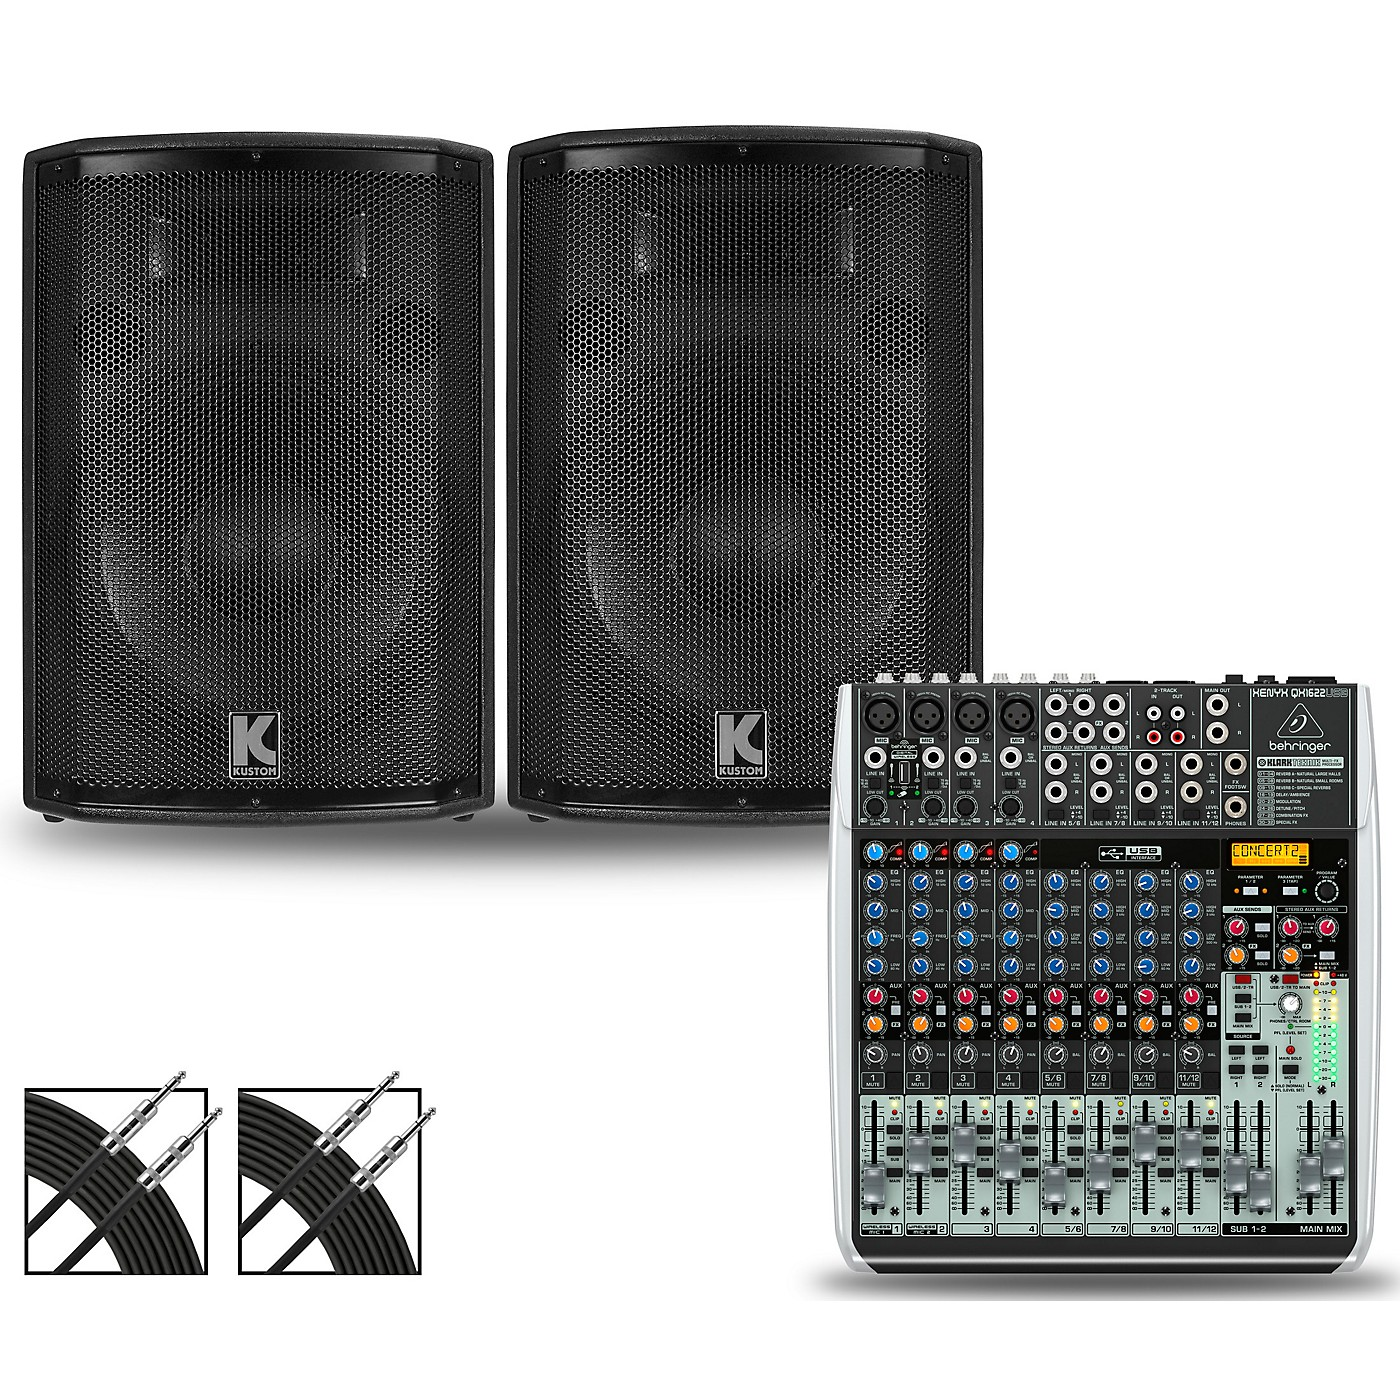 Behringer XENYX QX1622USB Mixer and Kustom HiPAC Speakers thumbnail